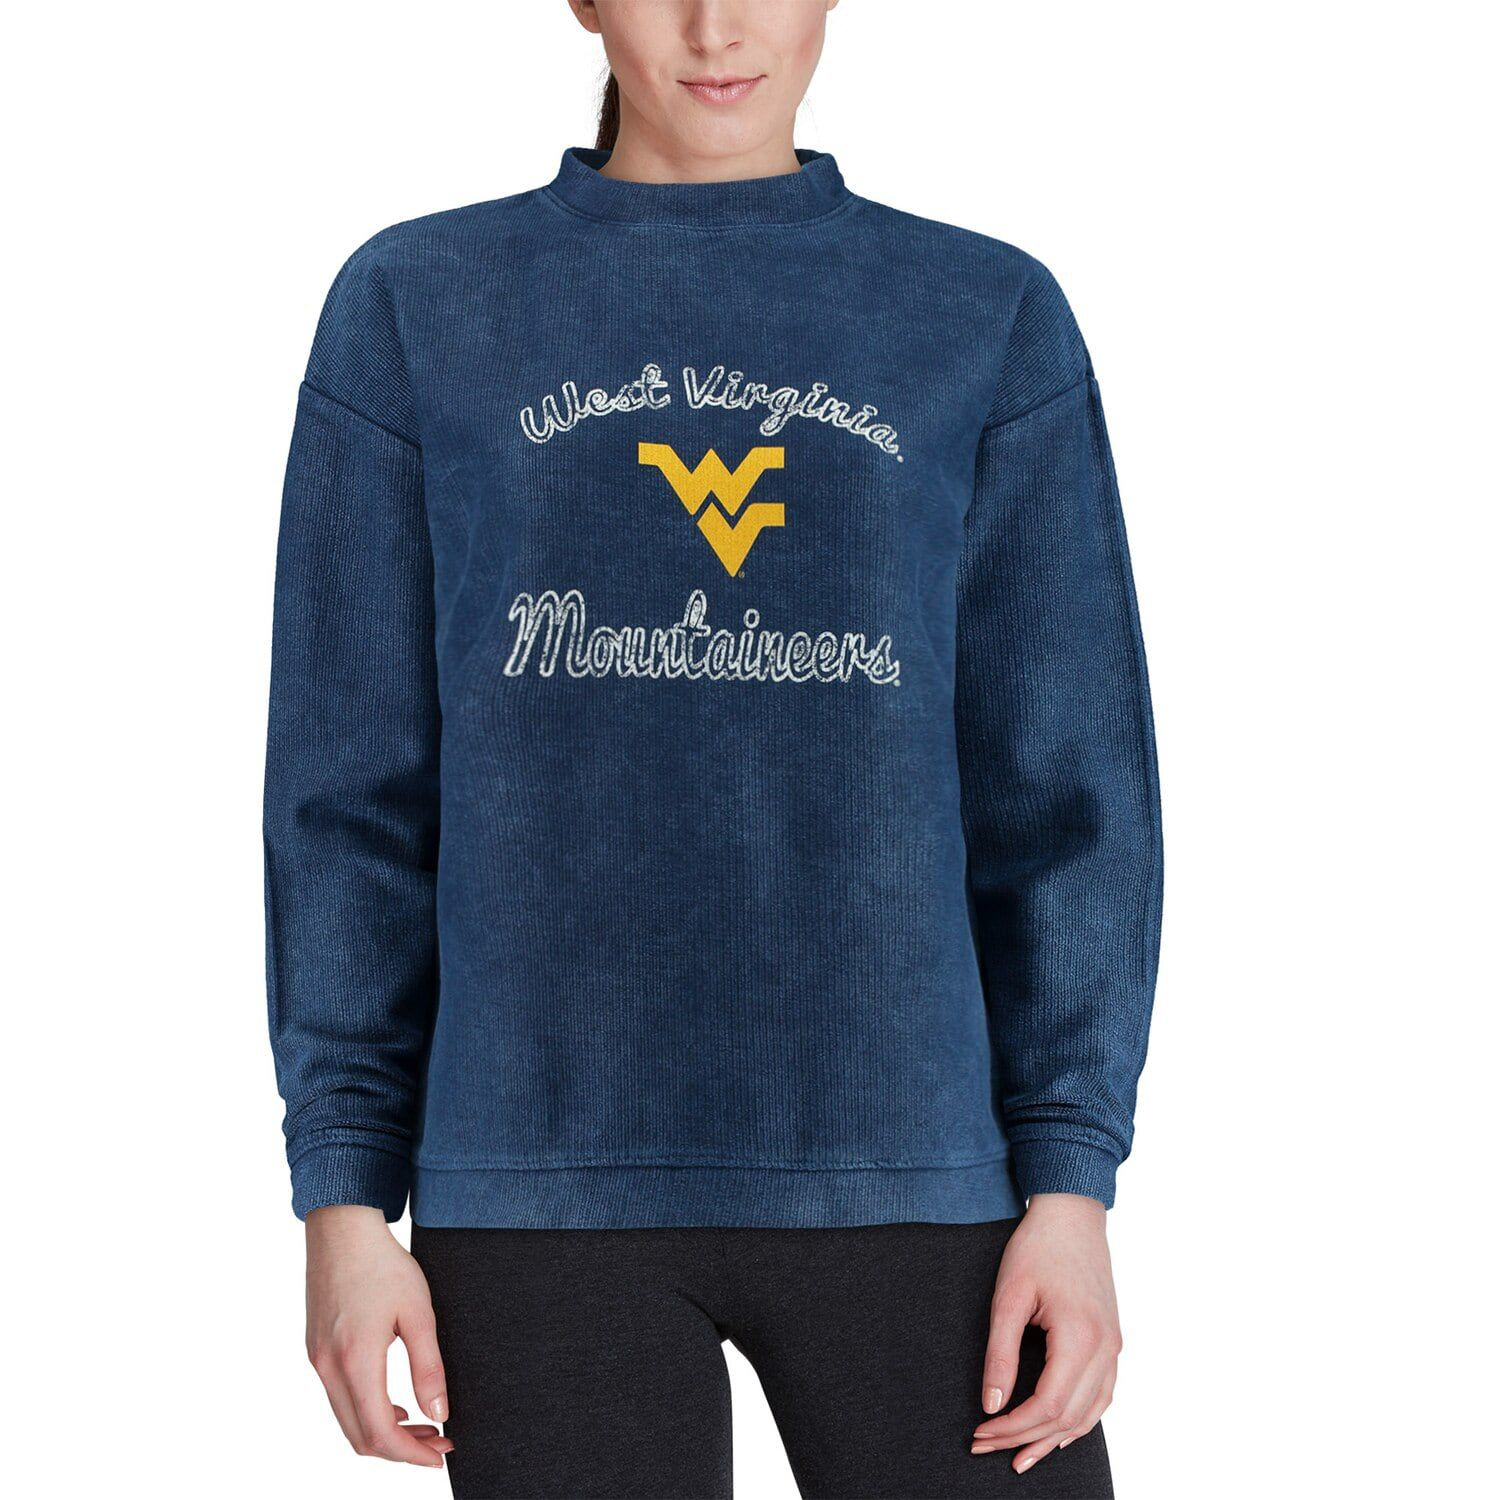 Women's Concepts Sport Charcoal West Virginia Mountaineers Jetway Mineral Wash Corduroy Crew Neck Sweatshirt #westvirginia